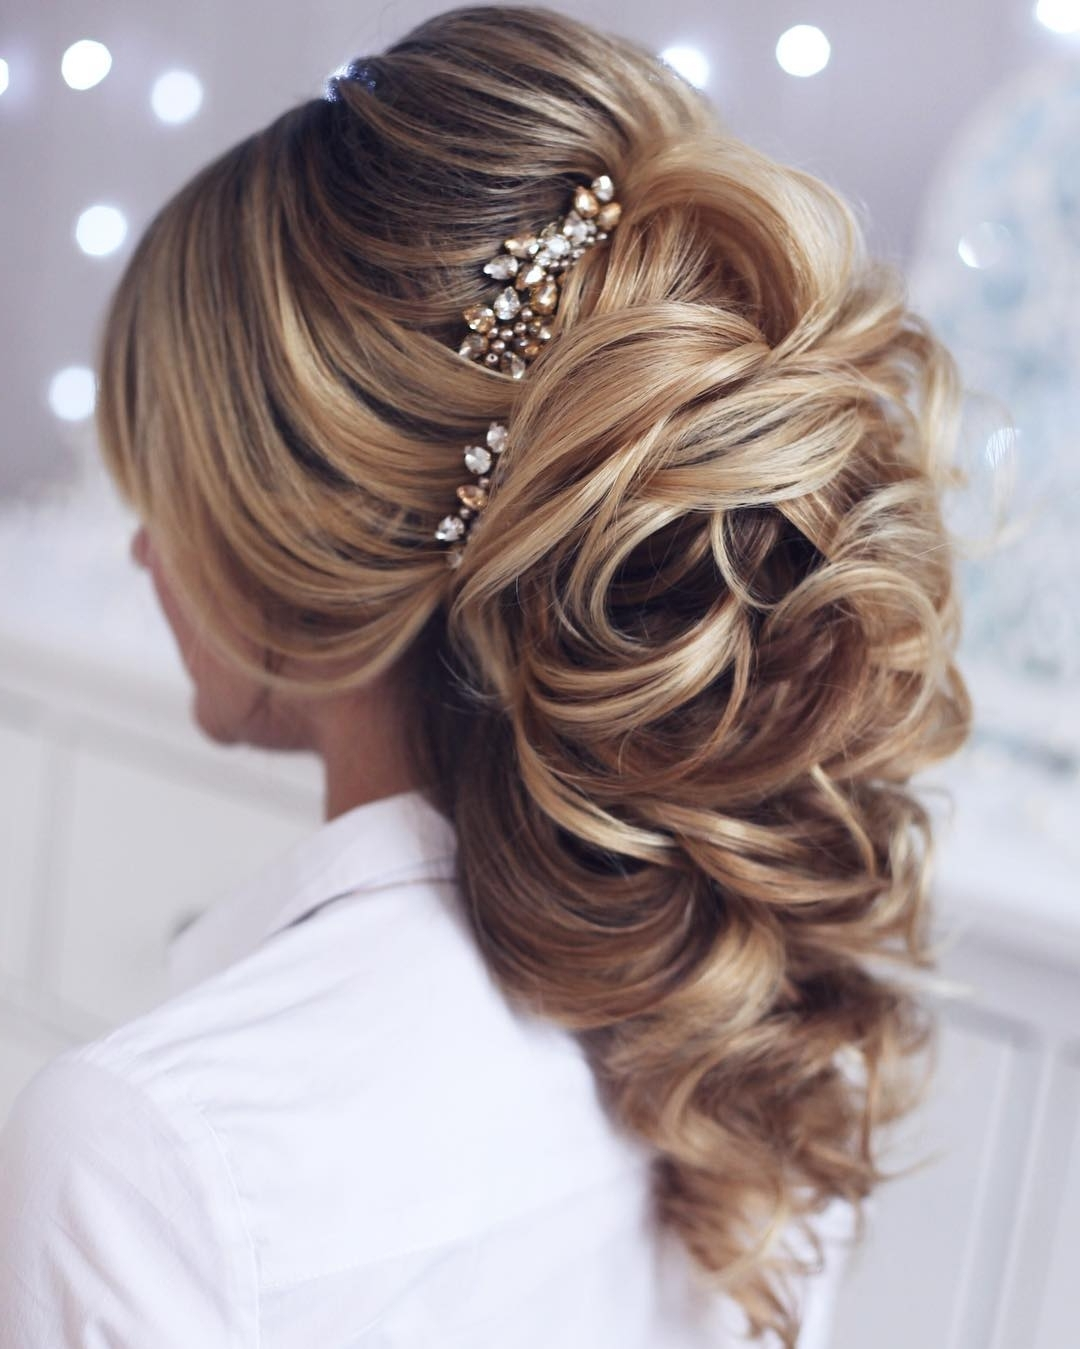 10 Lavish Wedding Hairstyles For Long Hair – Wedding Hairstyle Ideas Inside Fashionable Relaxed Wedding Hairstyles (View 1 of 15)